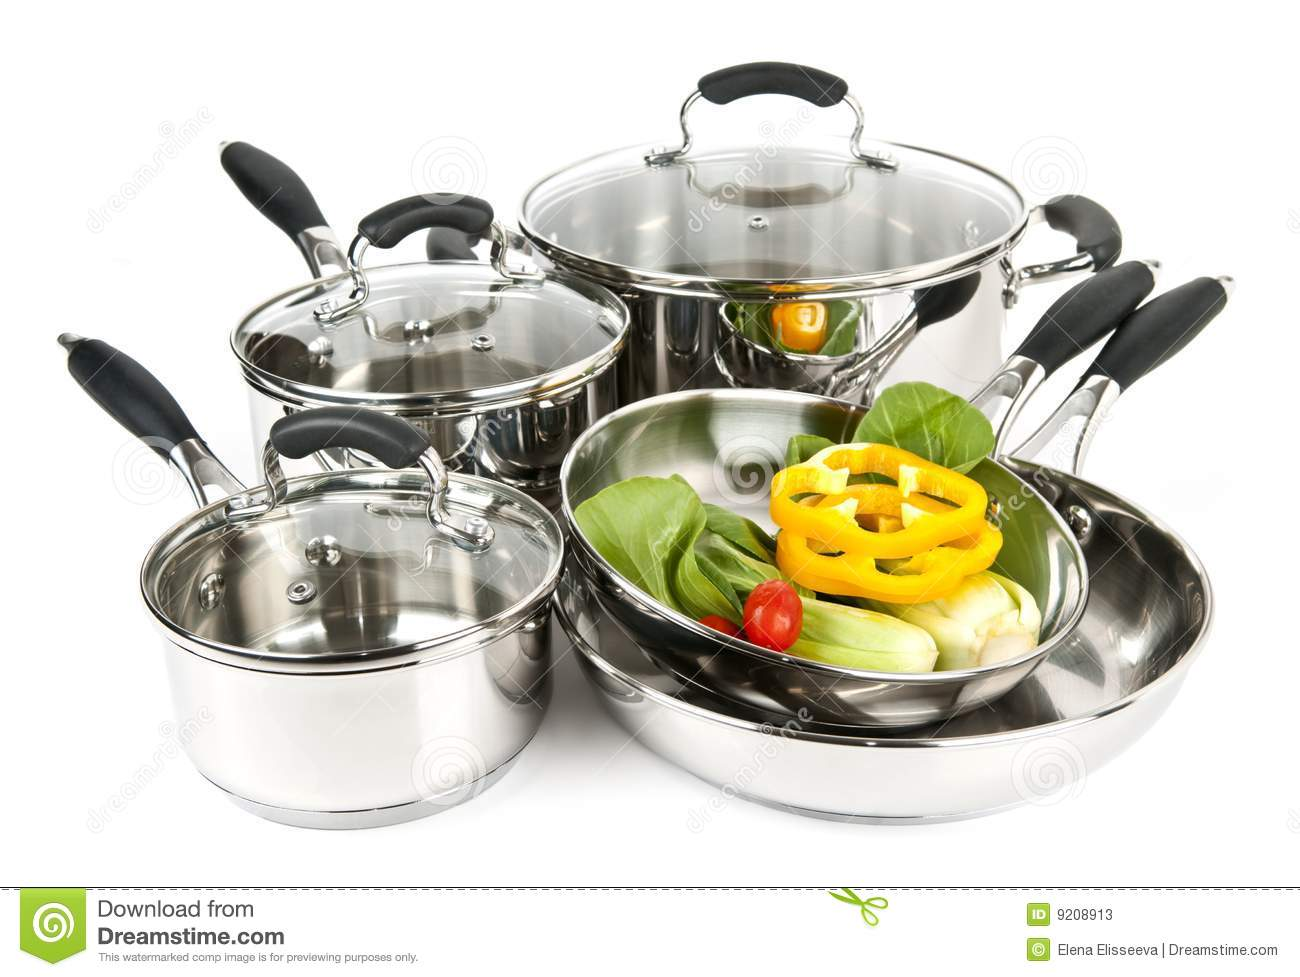 stainless steel pots and pans with vegetables stock image image of sauce durable 9208913. Black Bedroom Furniture Sets. Home Design Ideas